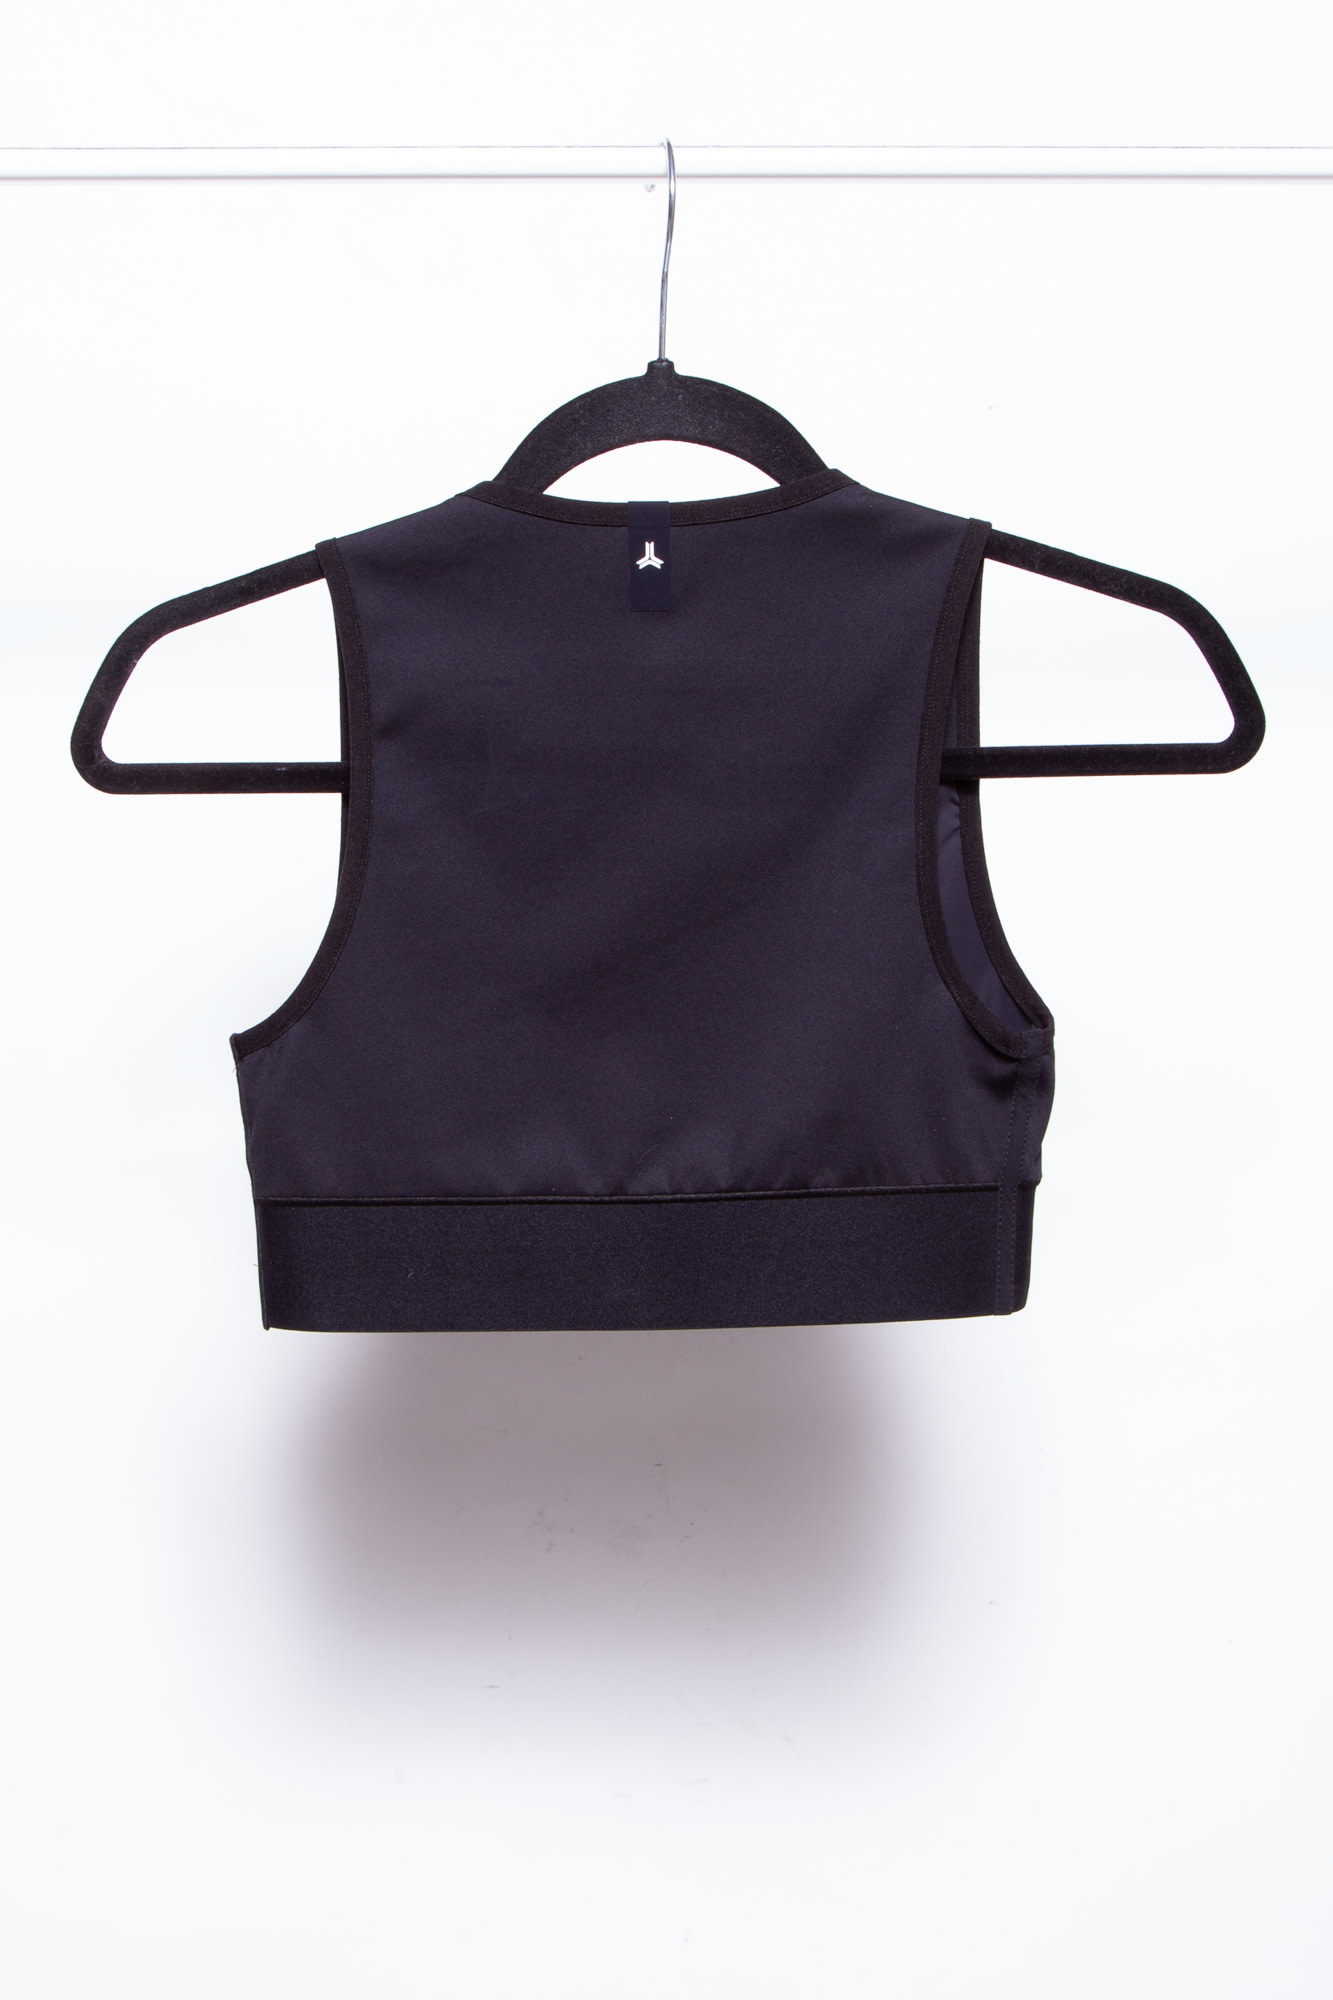 Ultracor BLACK SPORTS BRA WITH GOLDEN STAR - NEW